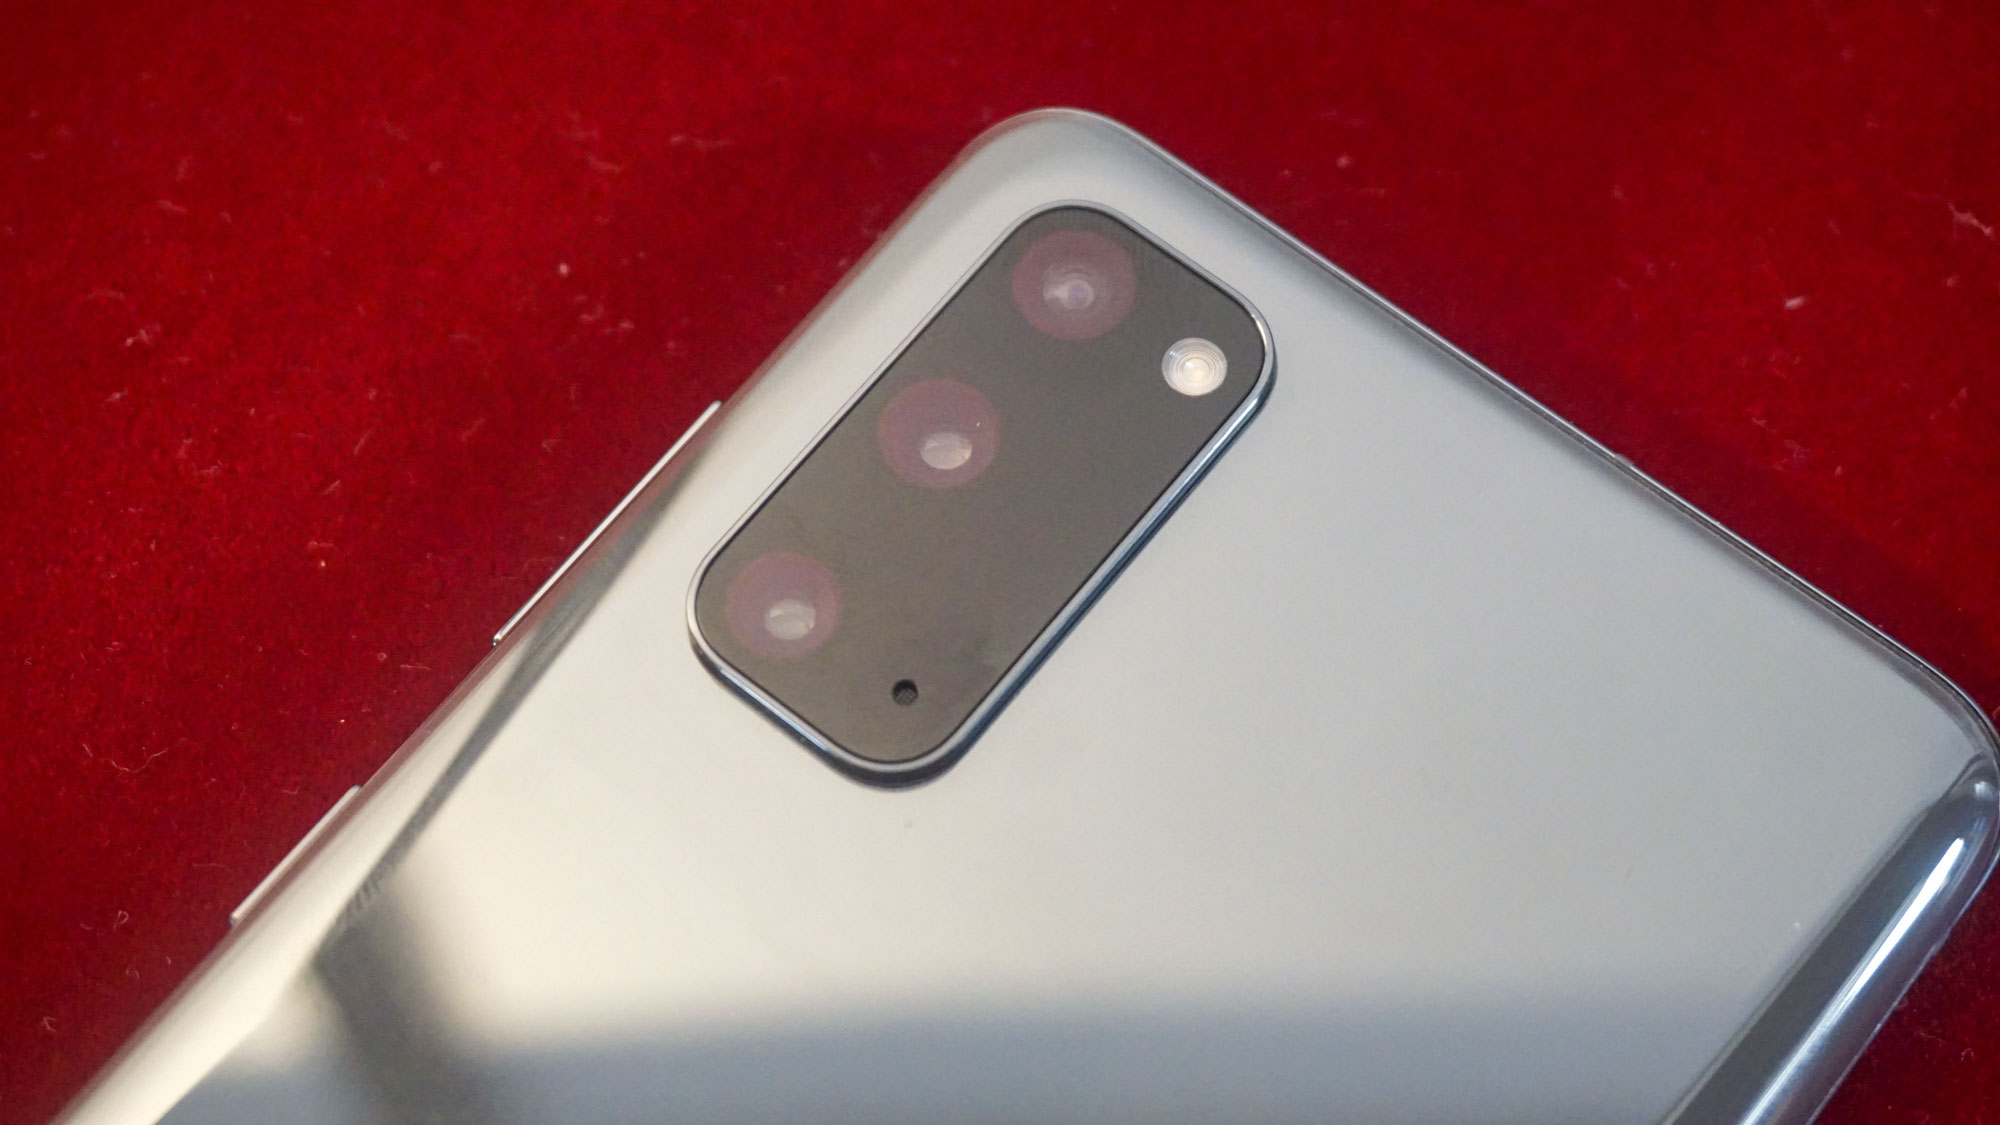 Samsung Galaxy S20's best camera features are now coming to Galaxy S10 and Note 10